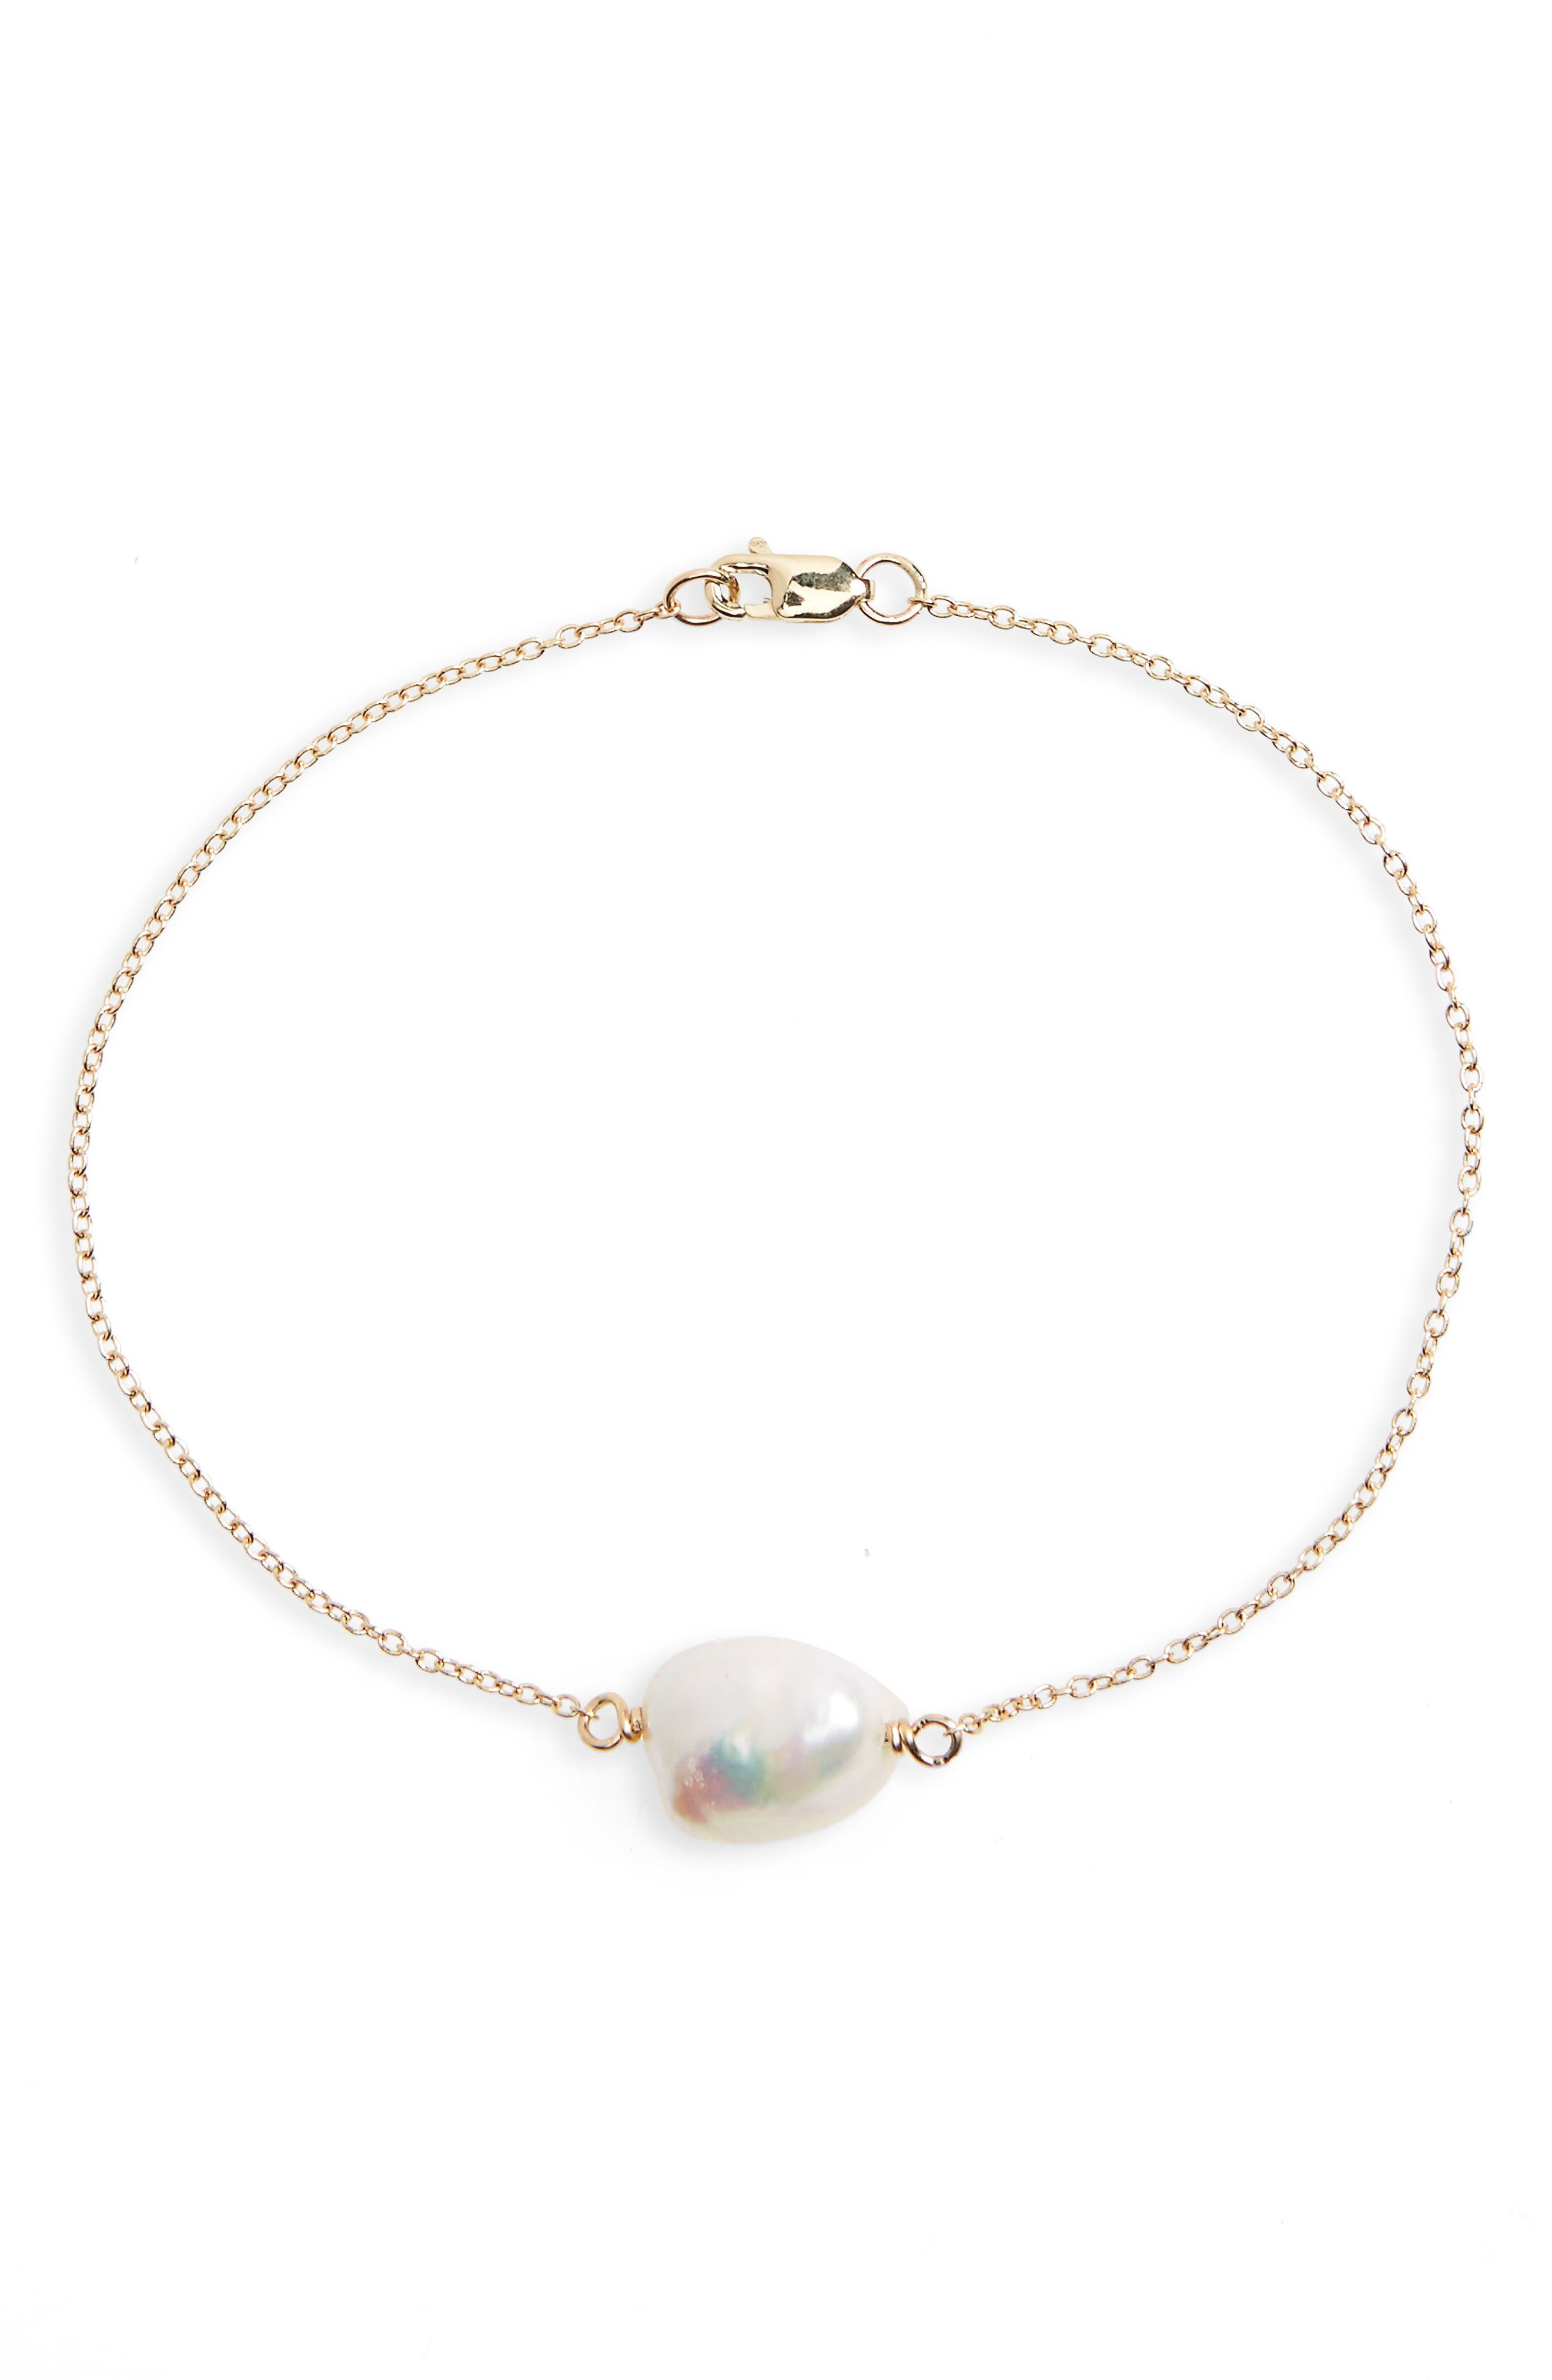 Keshi Cultured Pearl Bracelet,                             Main thumbnail 1, color,                             14K GOLD/ PEARL